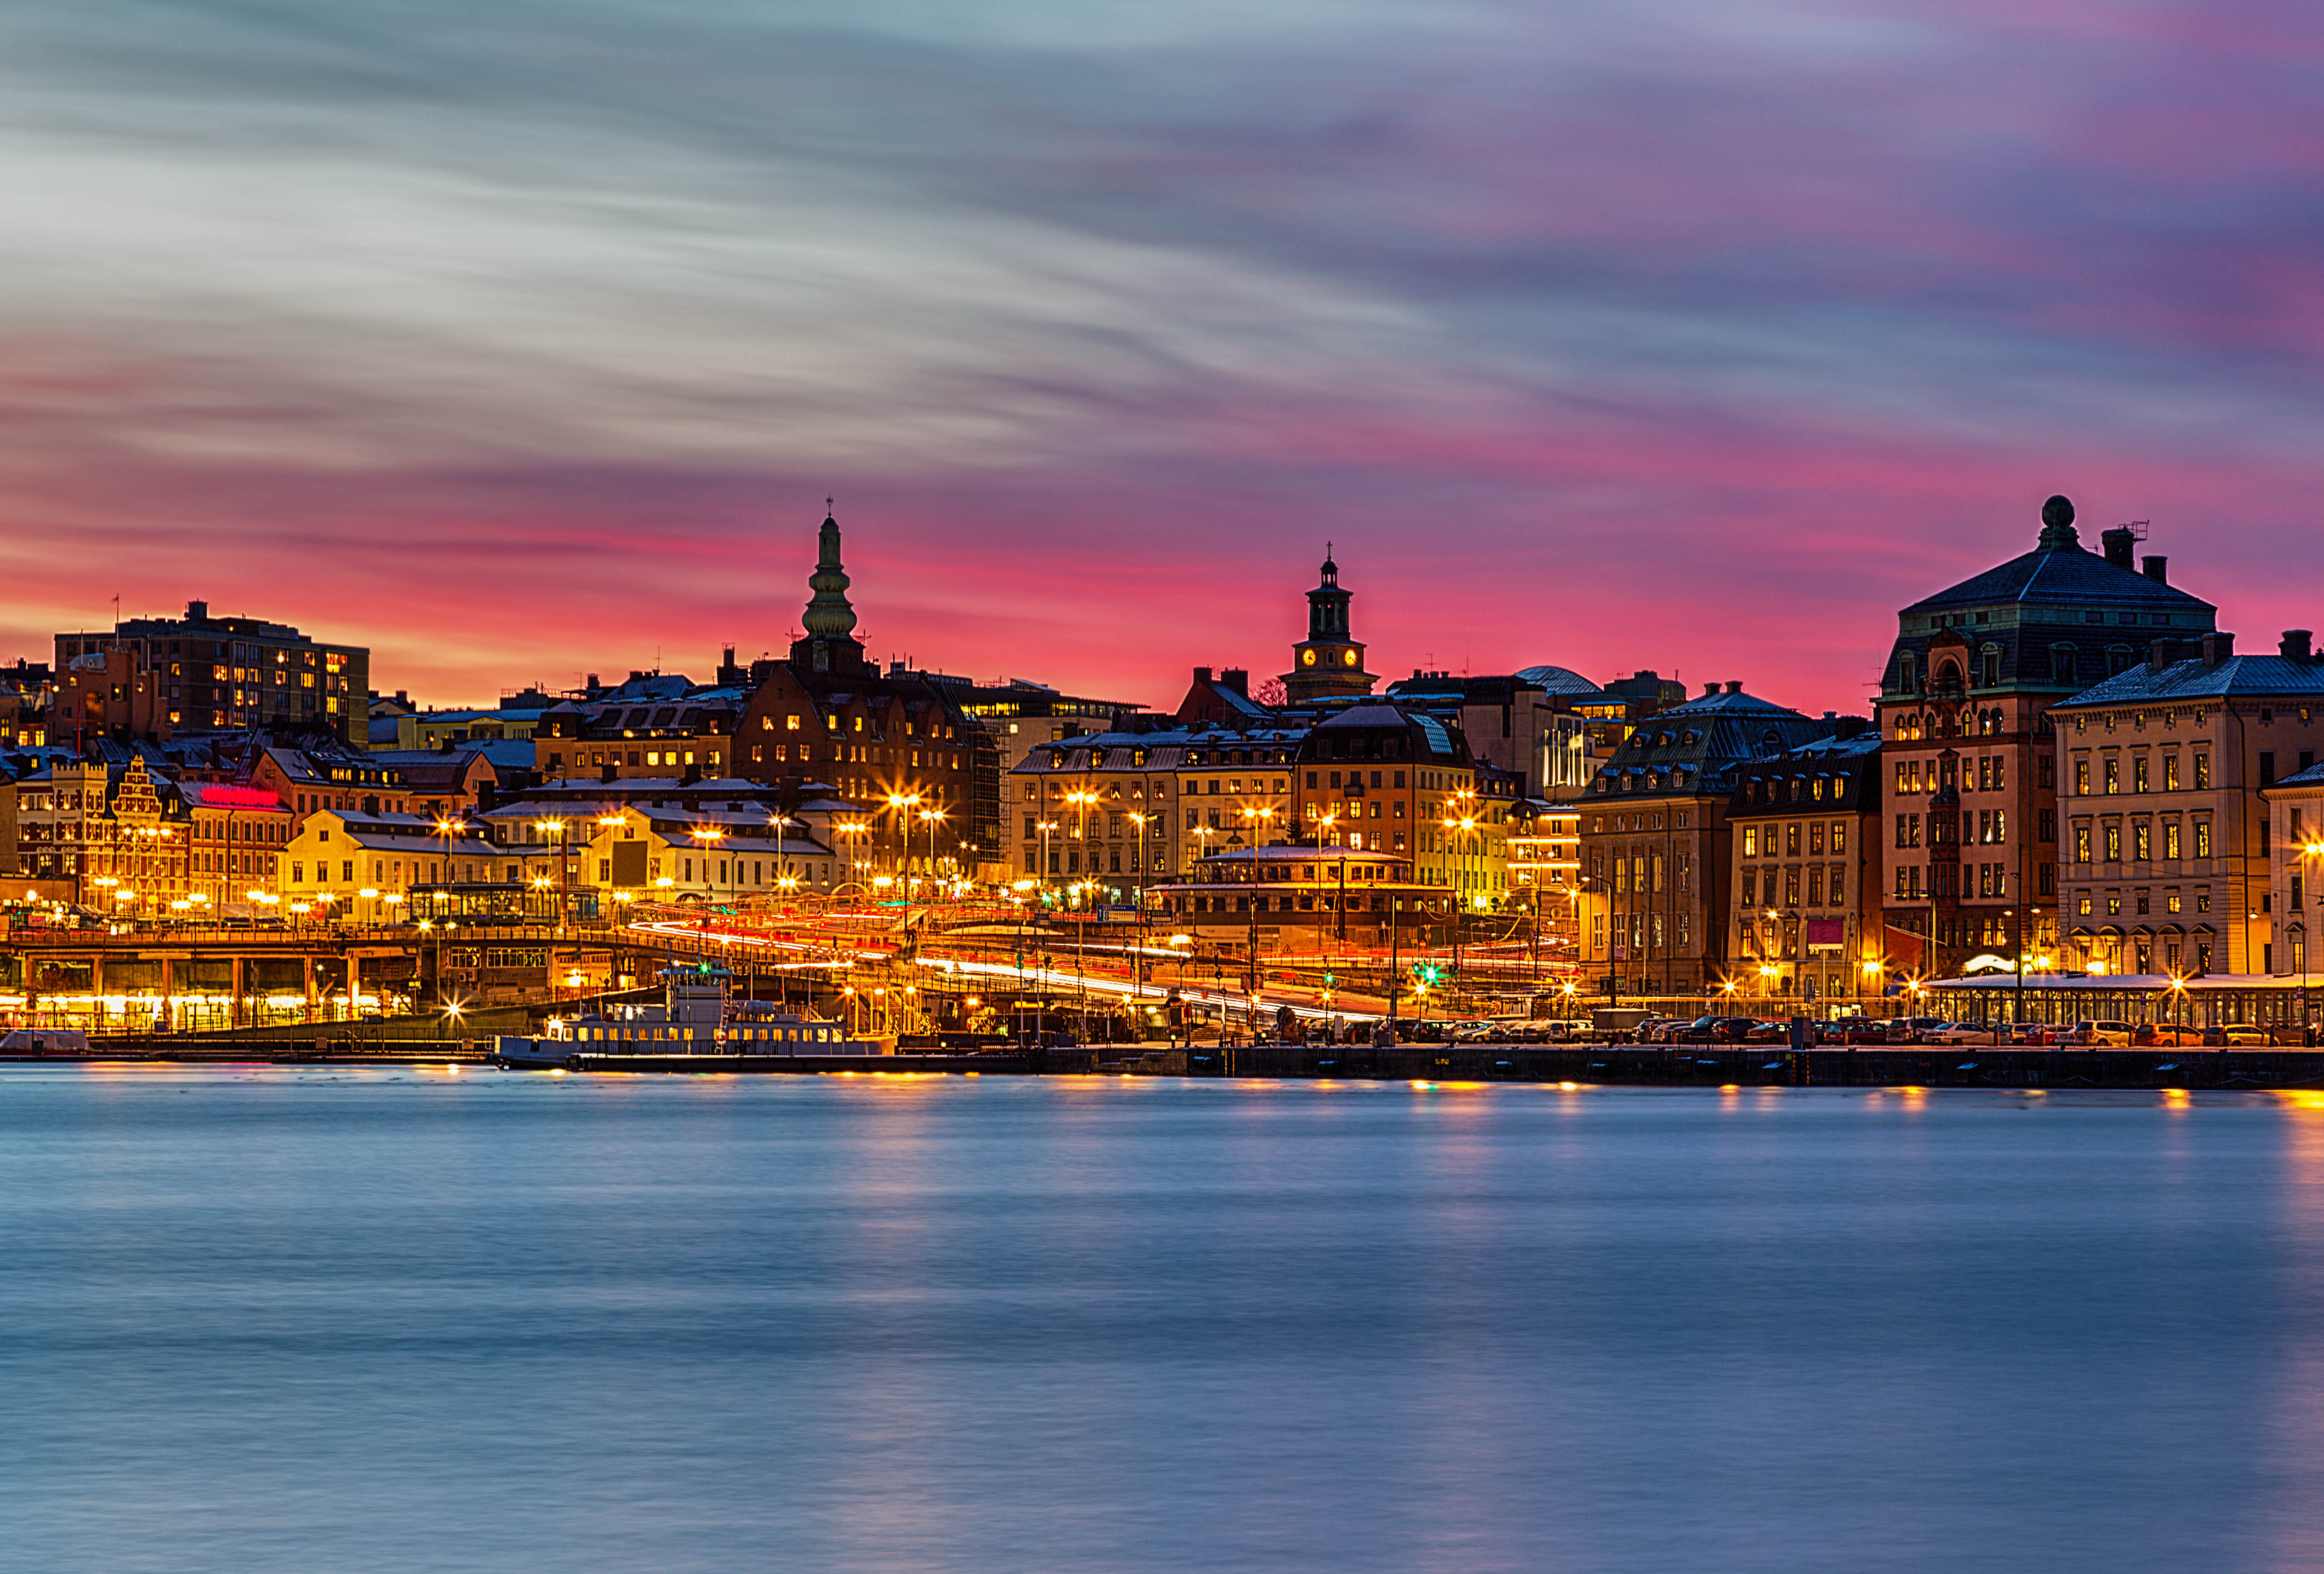 Beautiful pink sunset over Slussen in Stockholm city.